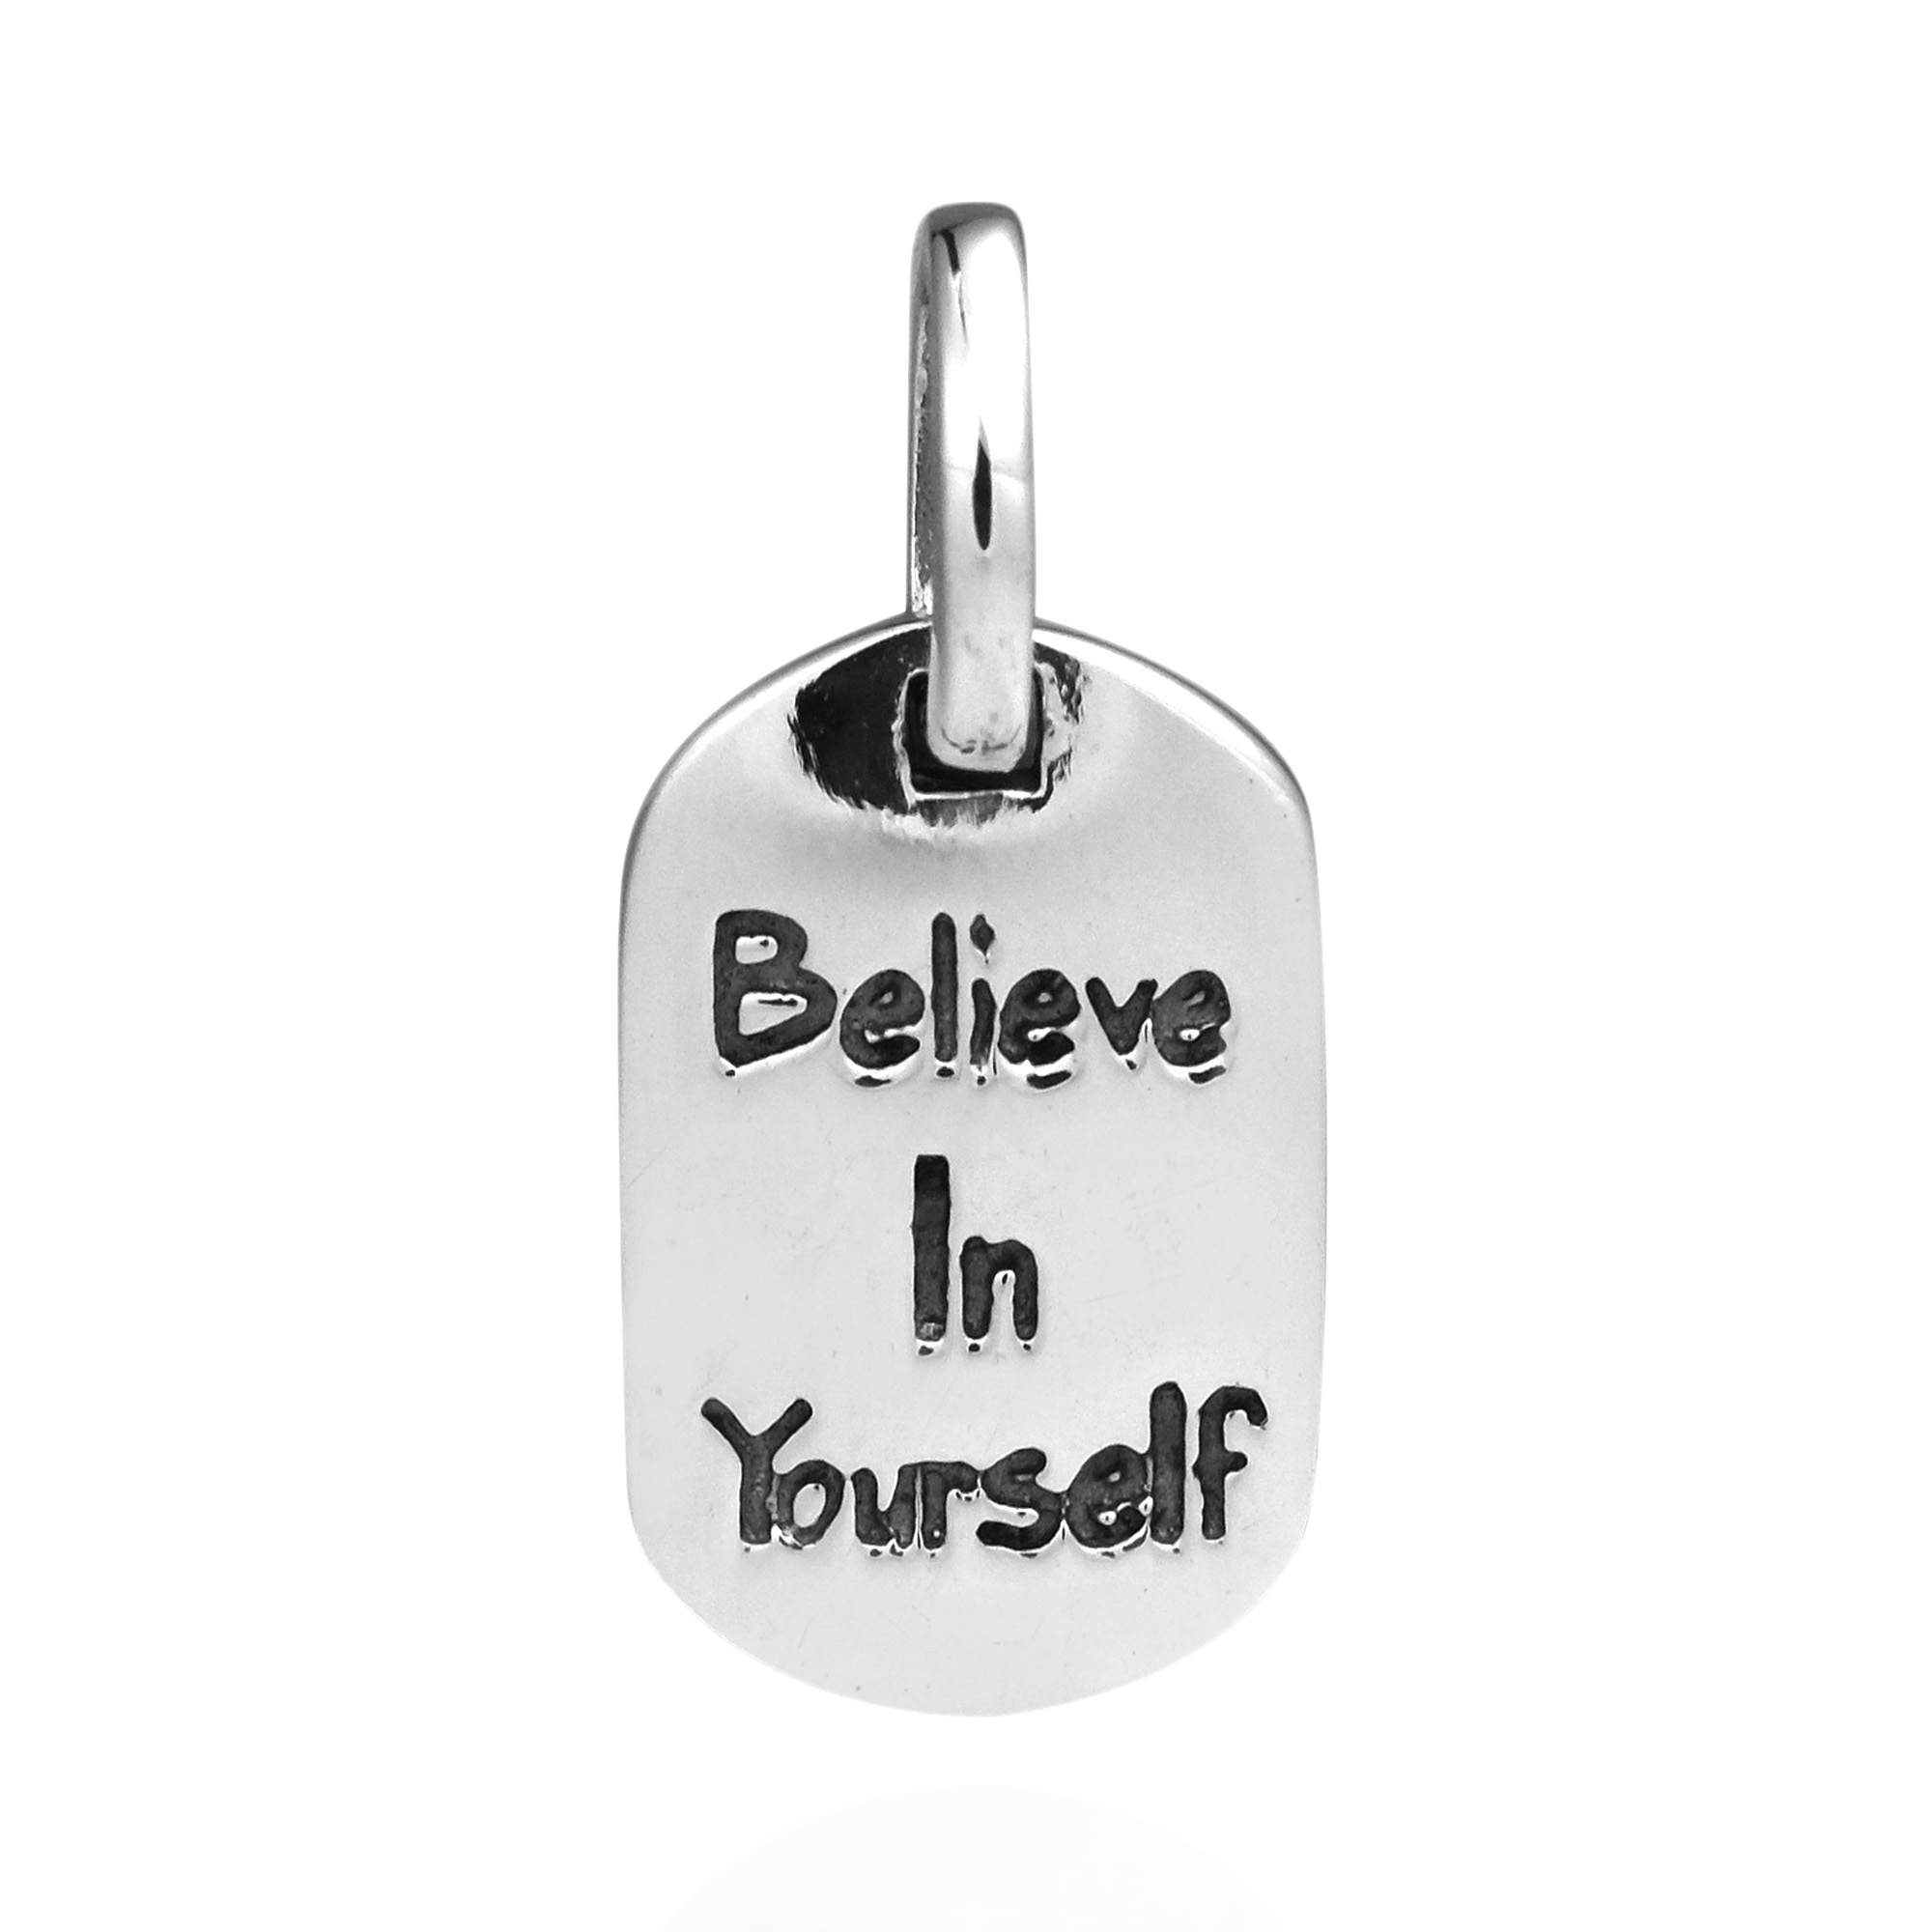 Believe in yourself message tag 925 silver pendant aeravida inspirational believe in yourself message pendant handcrafted by artisans with genuine sterling silver this lovely pendant will compliment any outfit or solutioingenieria Image collections